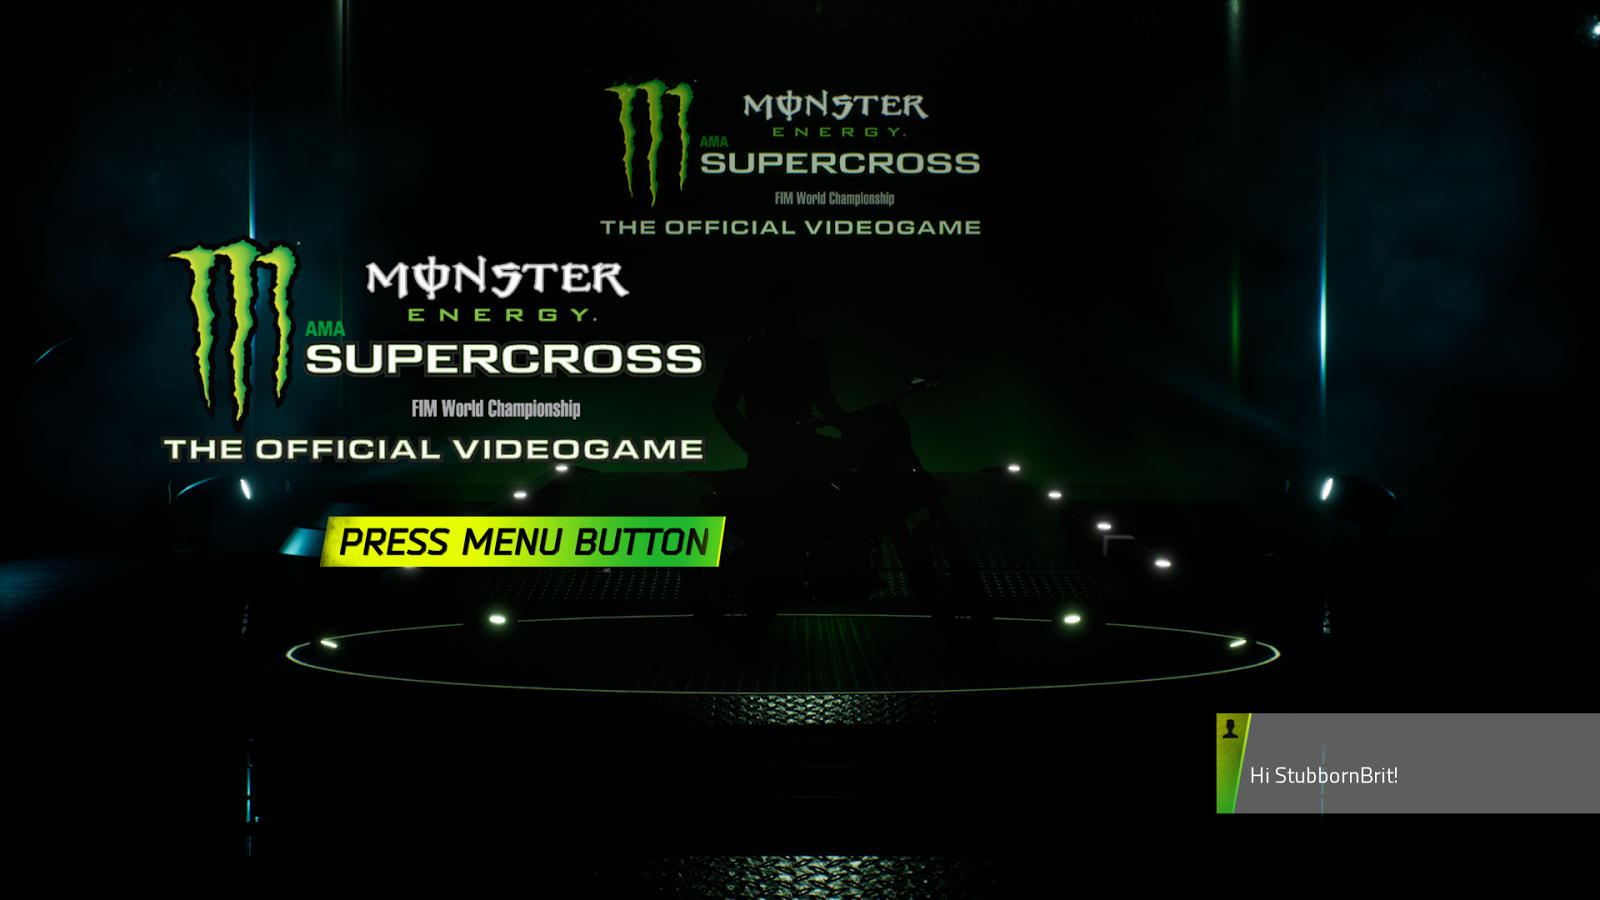 Monster Energy Supercross - The Official Videogame (Xbox)